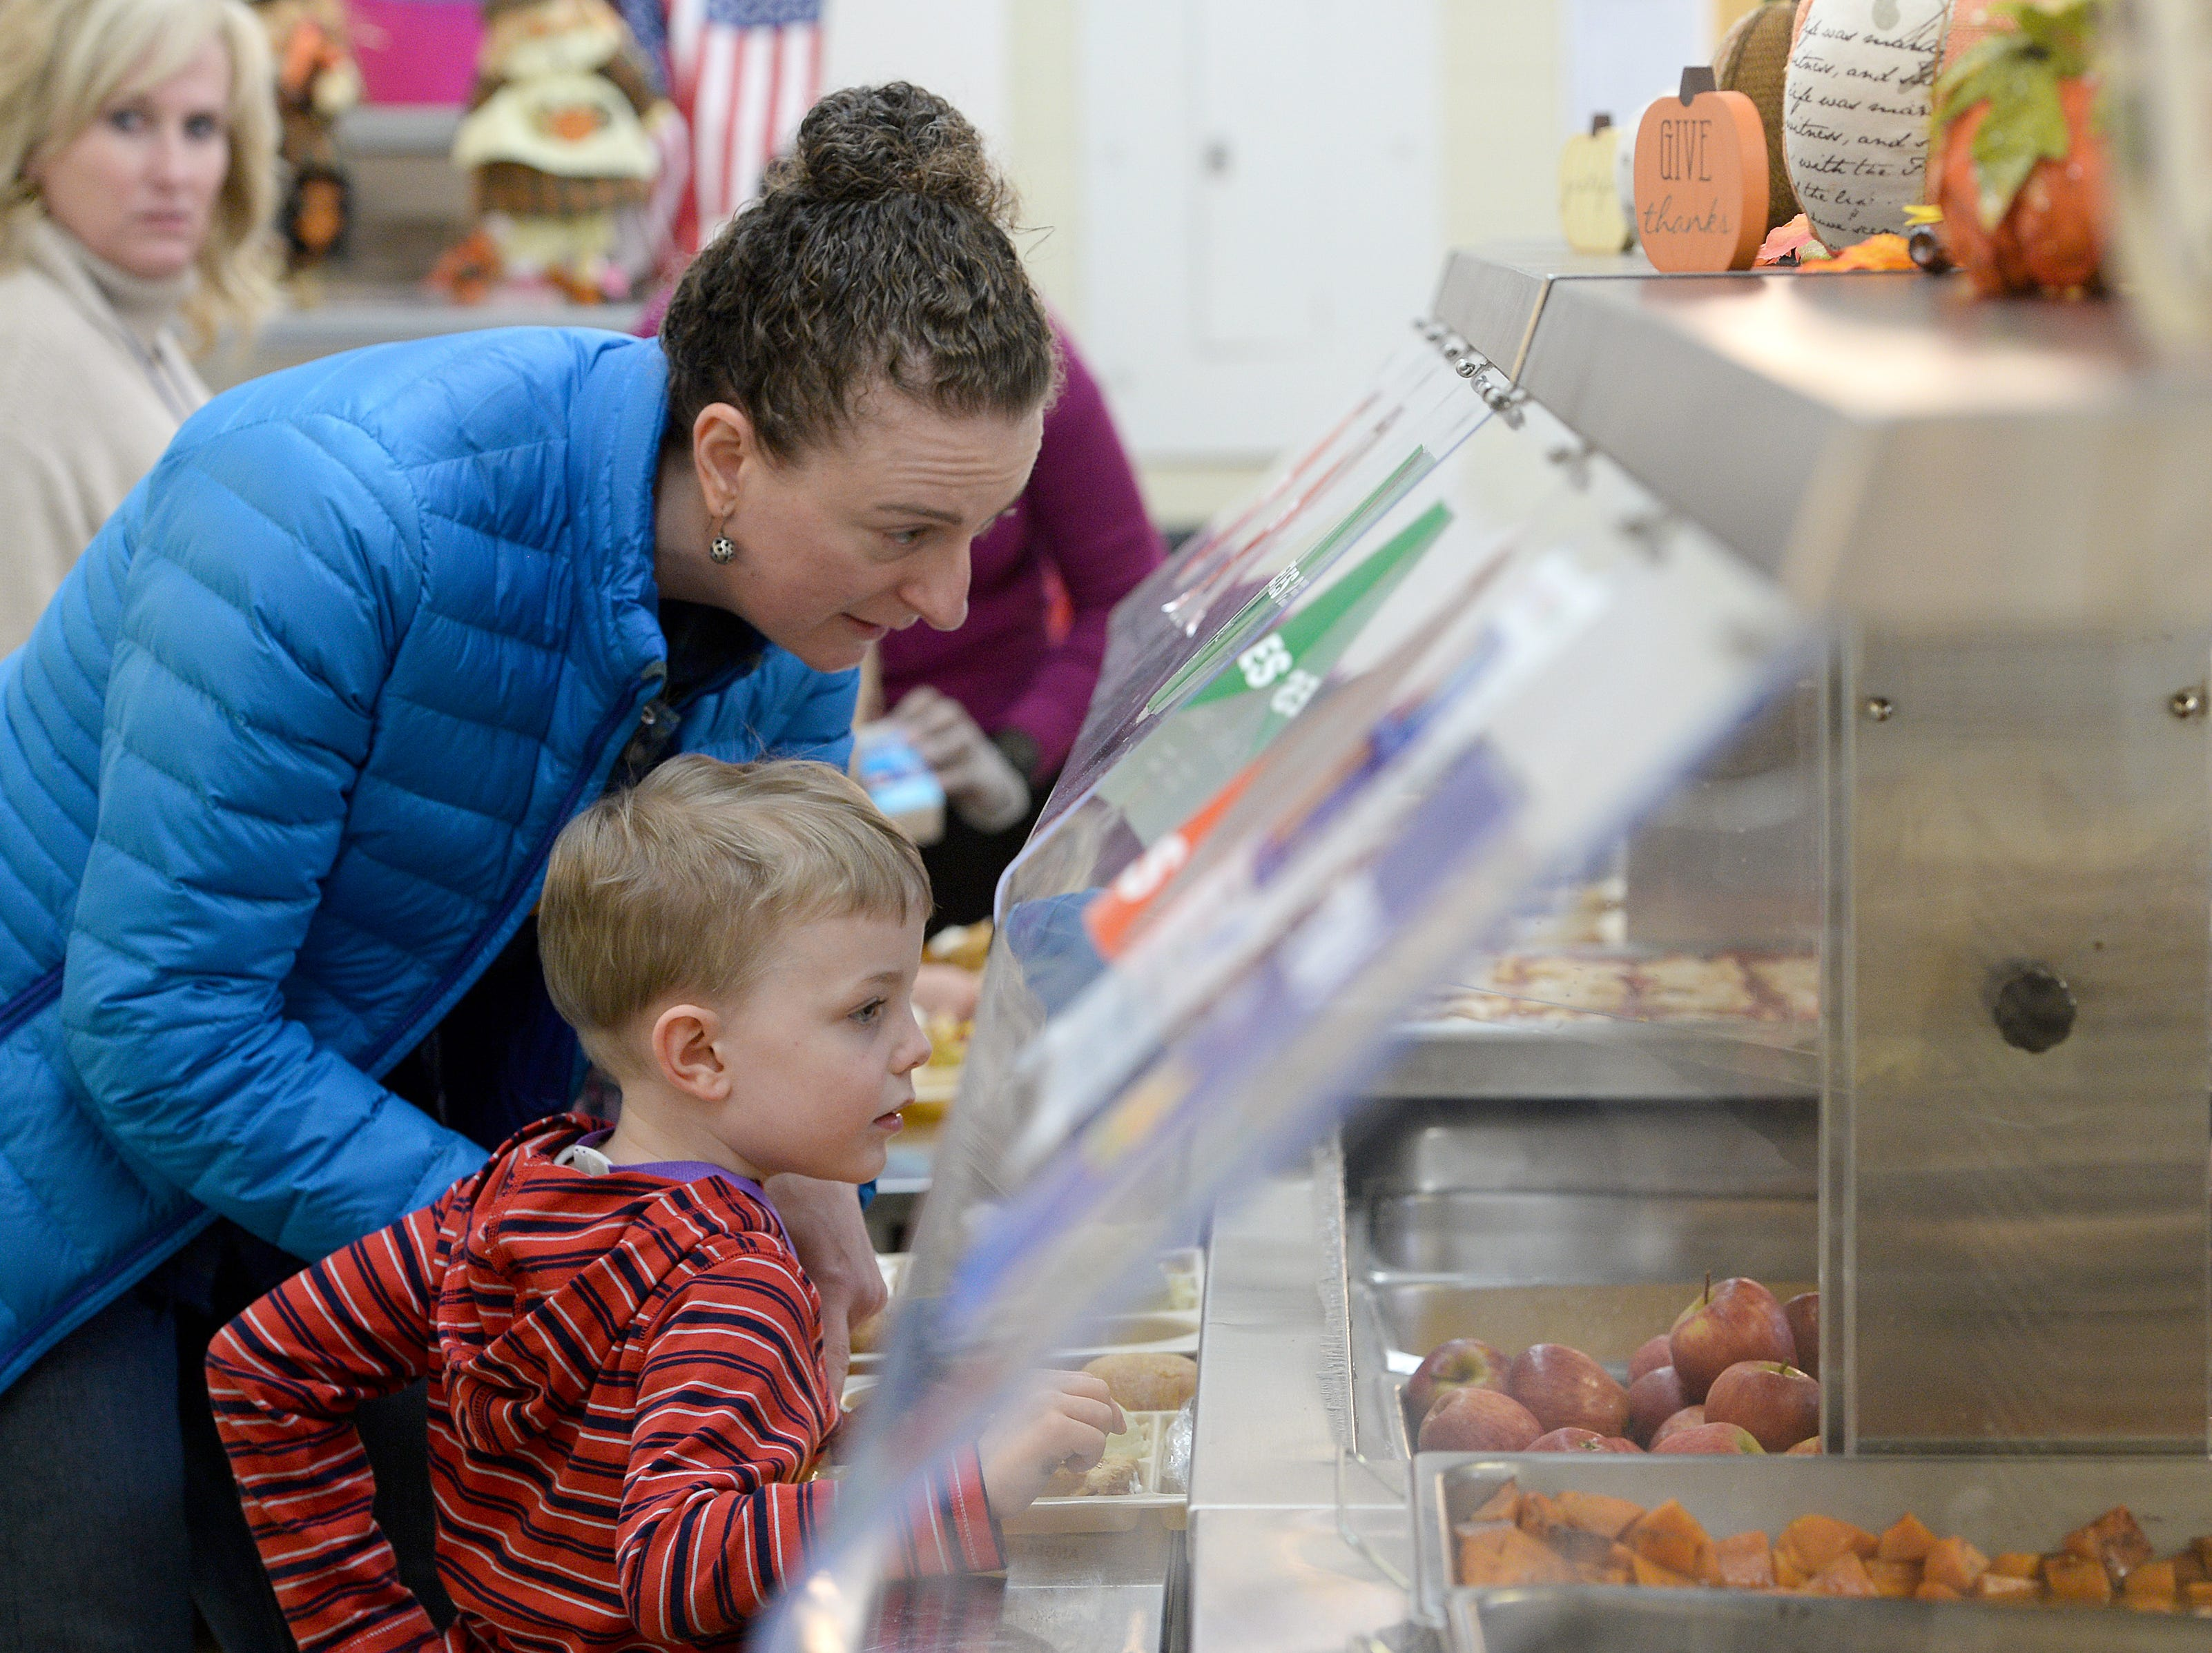 Audrey Gurin and her son, Simon, 5, check out their fruit options in line as they eat a special Thanksgiving-style lunch together at Ira B. Jones Elementary School on Nov. 14, 2018. Asheville City Schools served a special meal at all of their schools to celebrate the holiday.